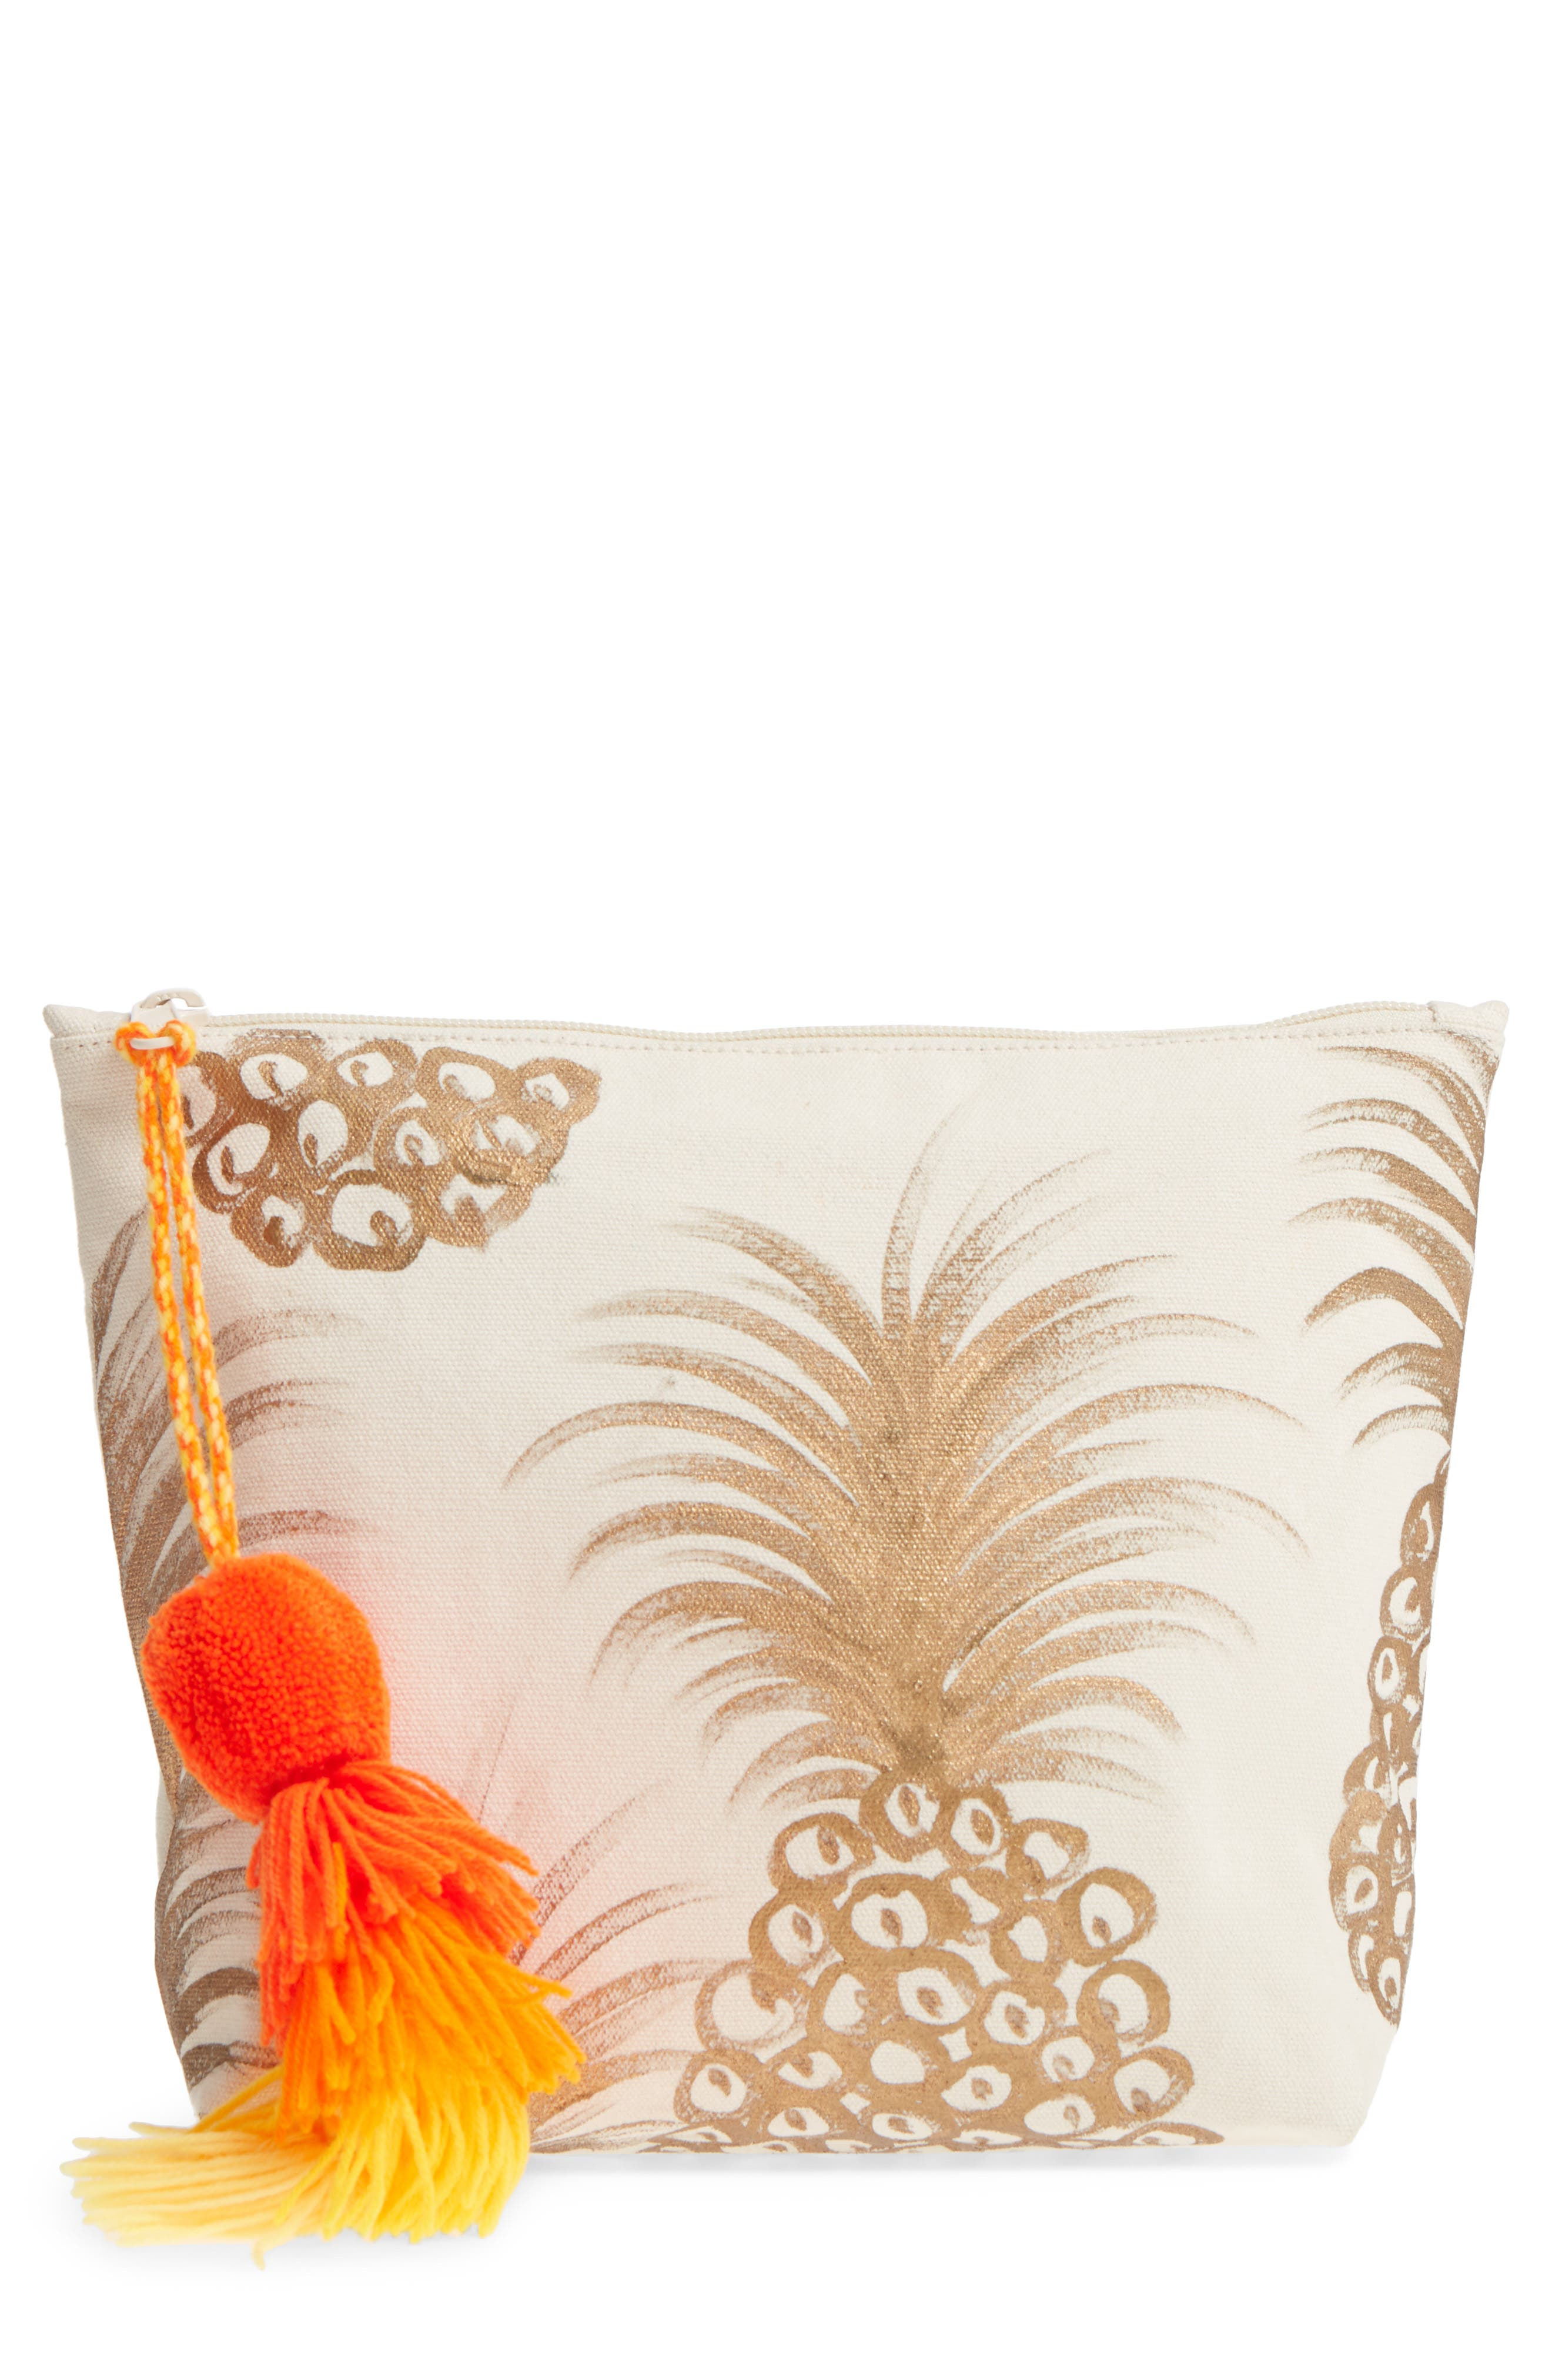 Tropicana Tassel Cosmetic Pouch,                         Main,                         color, GOLD